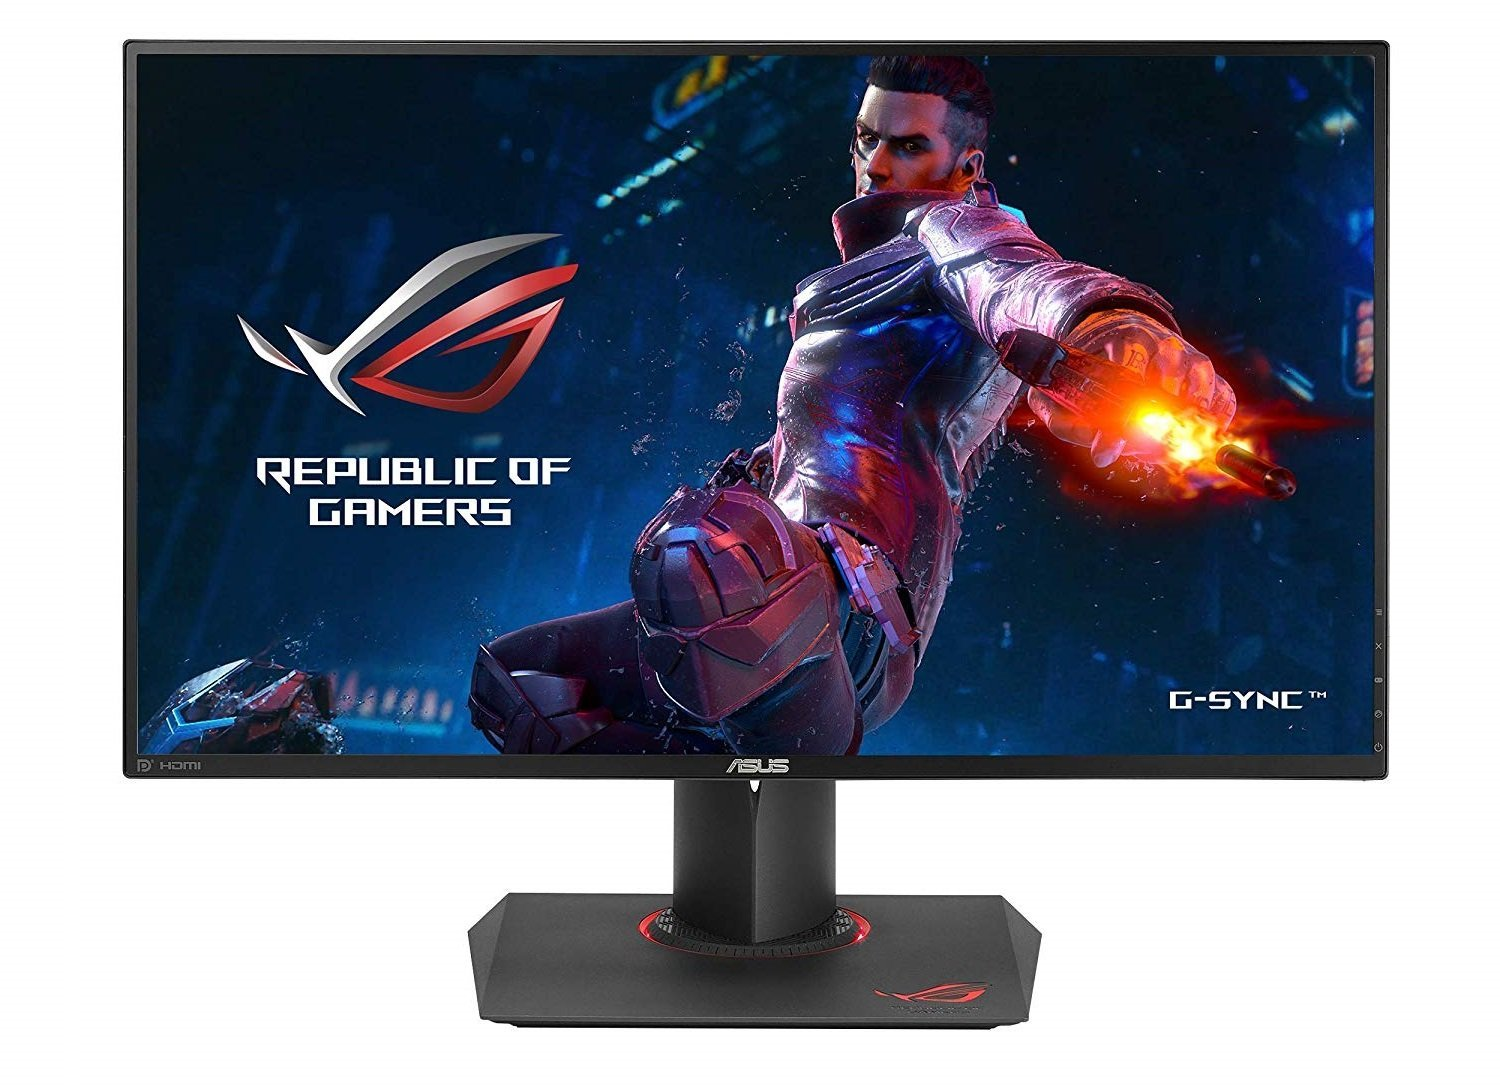 Image of 27-inch IPS panel from Asus ROG